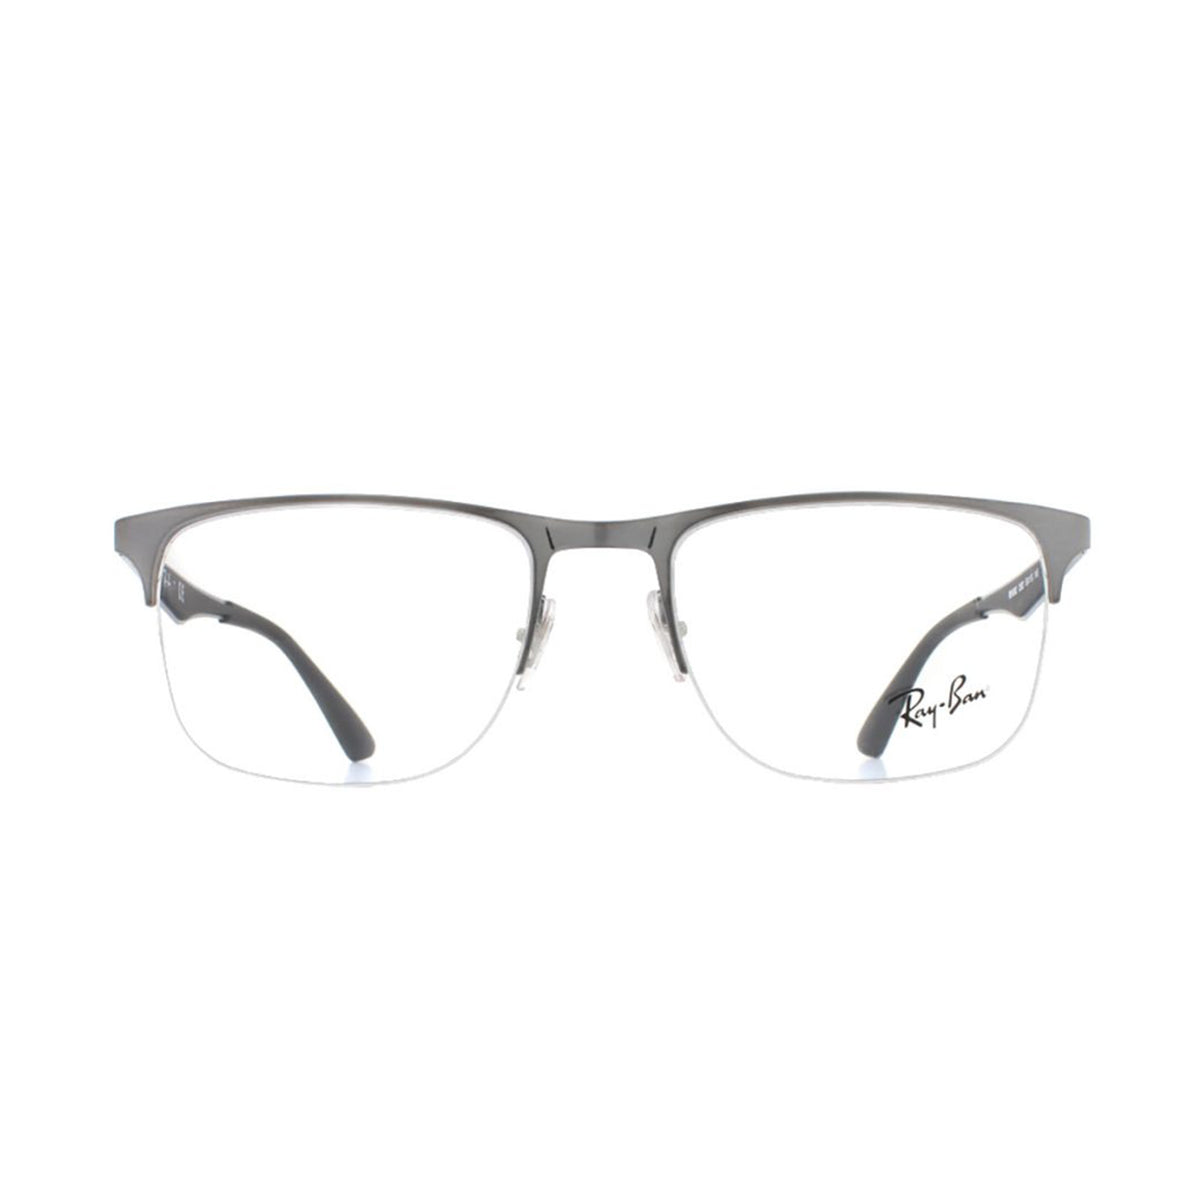 Ray Ban Rx - RX6362 Silver Semi-Rimless Unisex Eyeglasses - 53mm